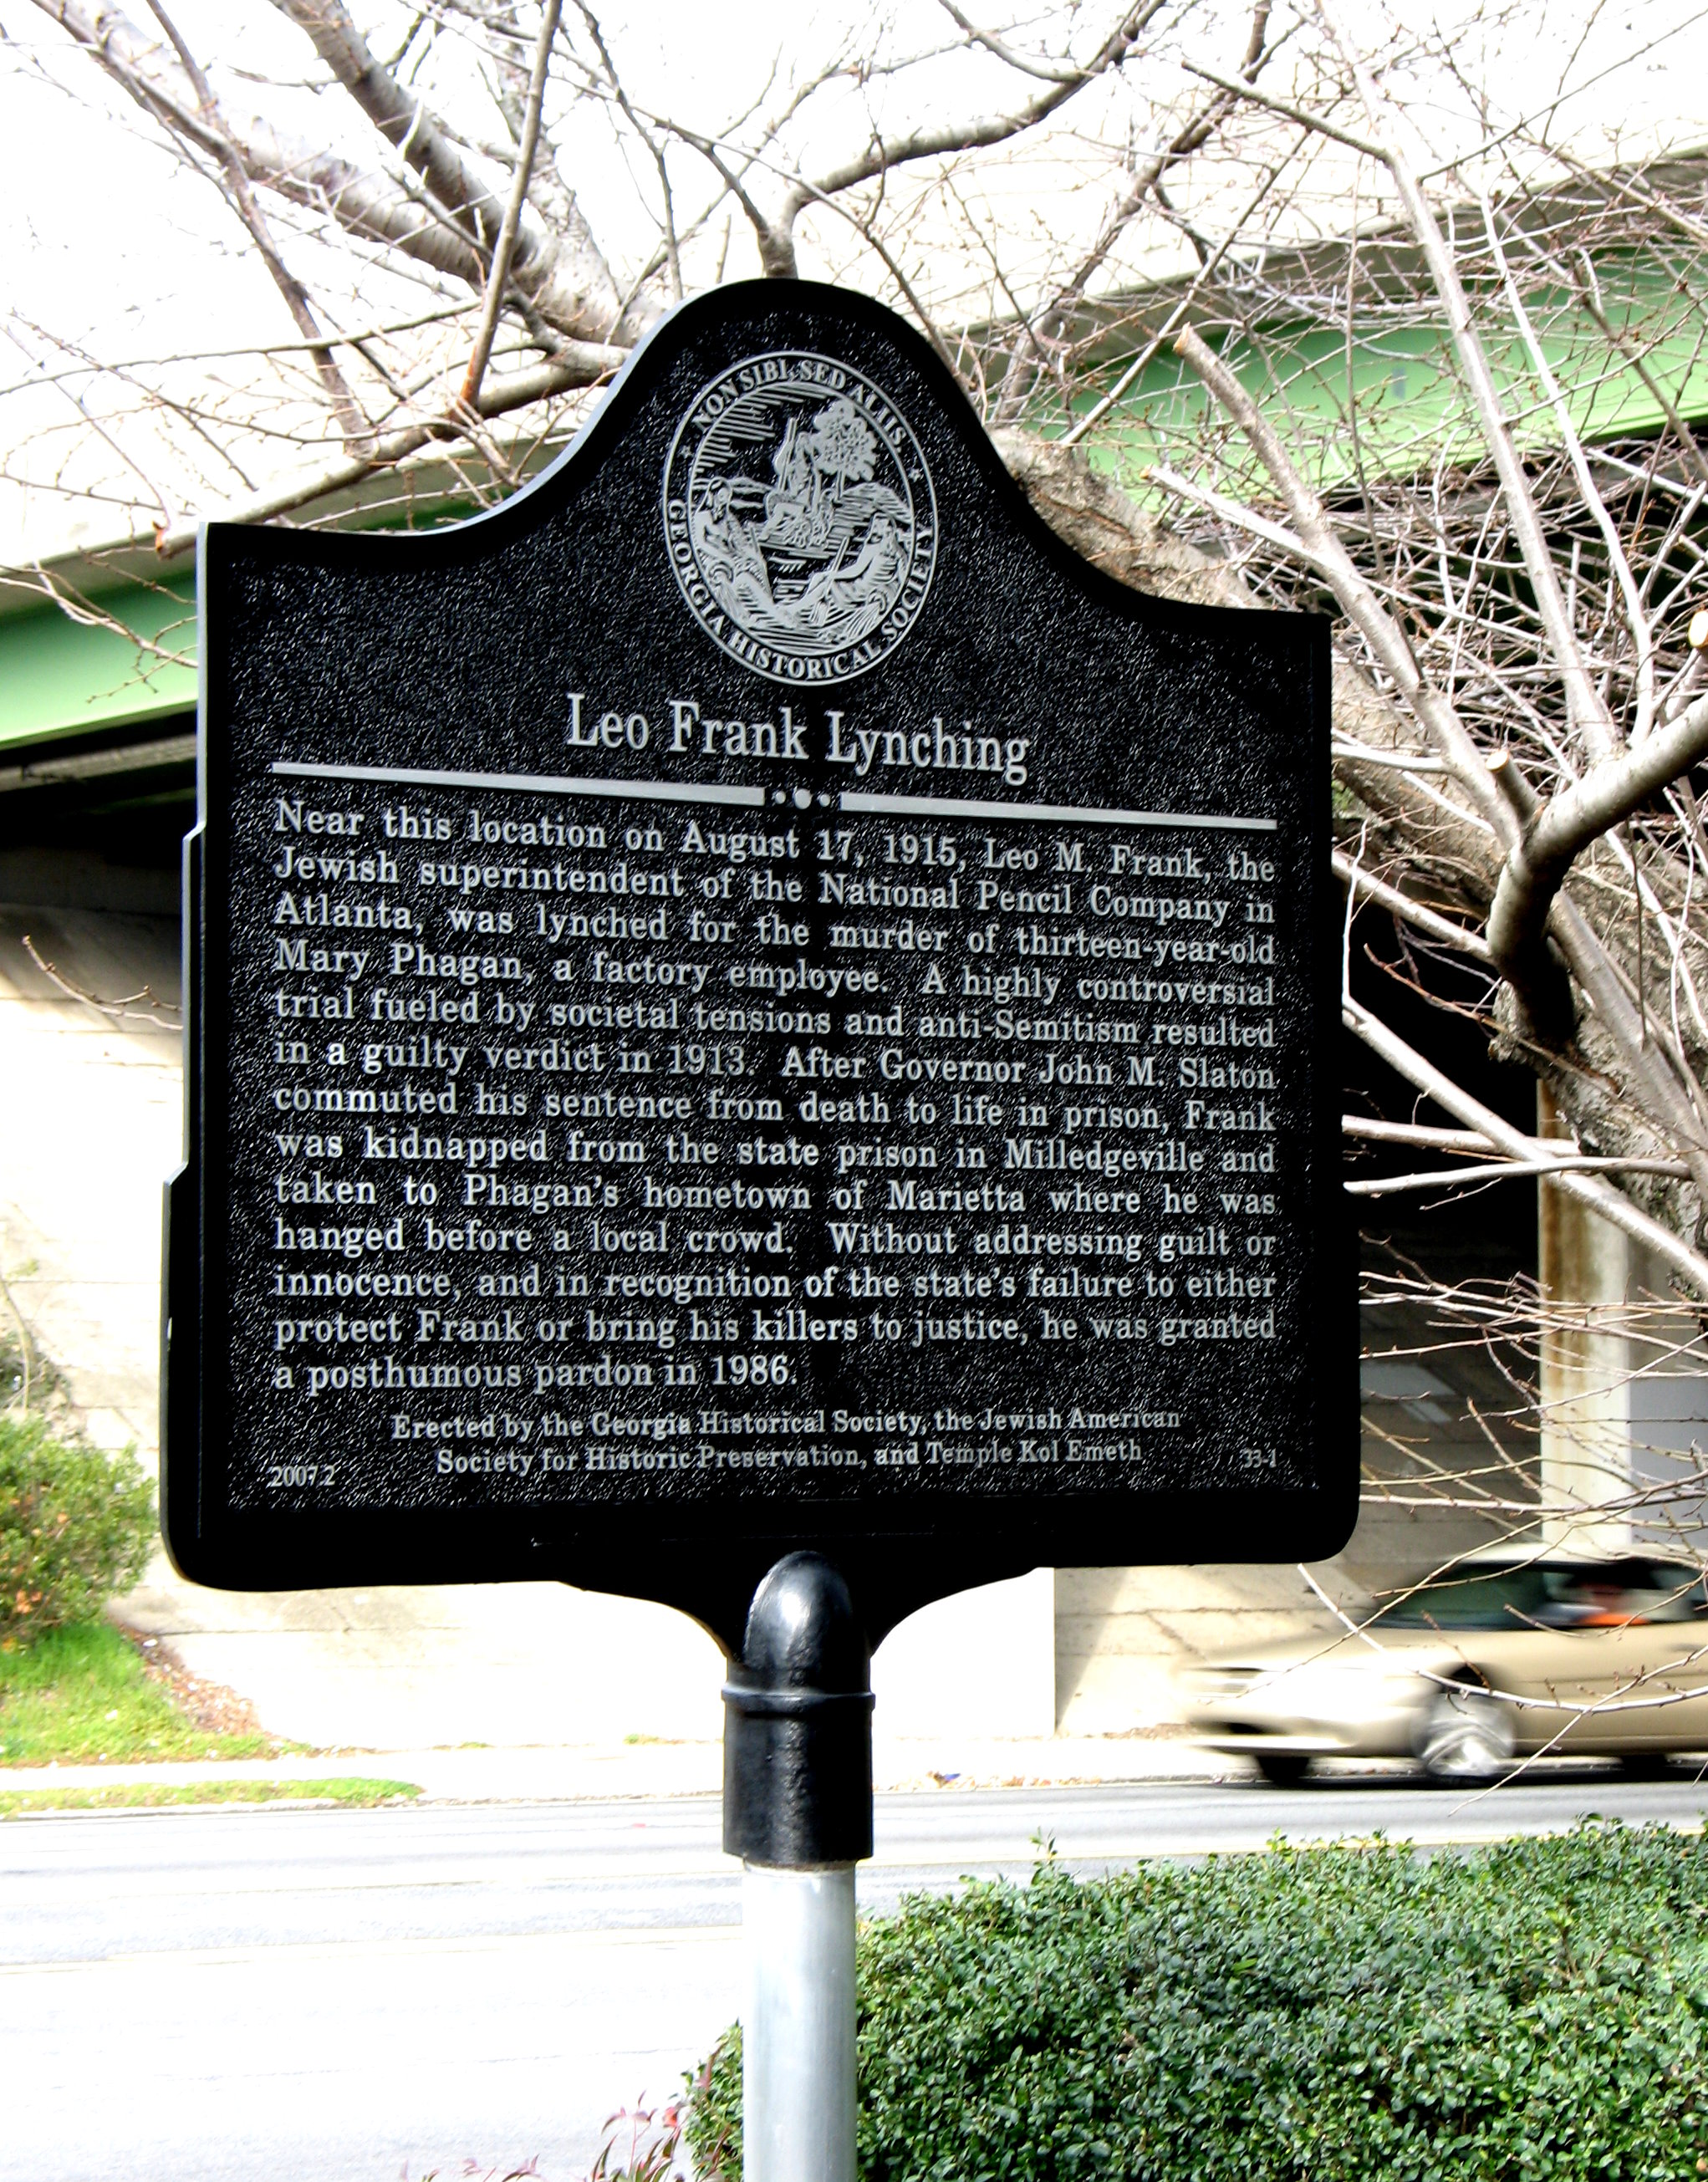 Historical marker on the site of Leo Frank's lynching.